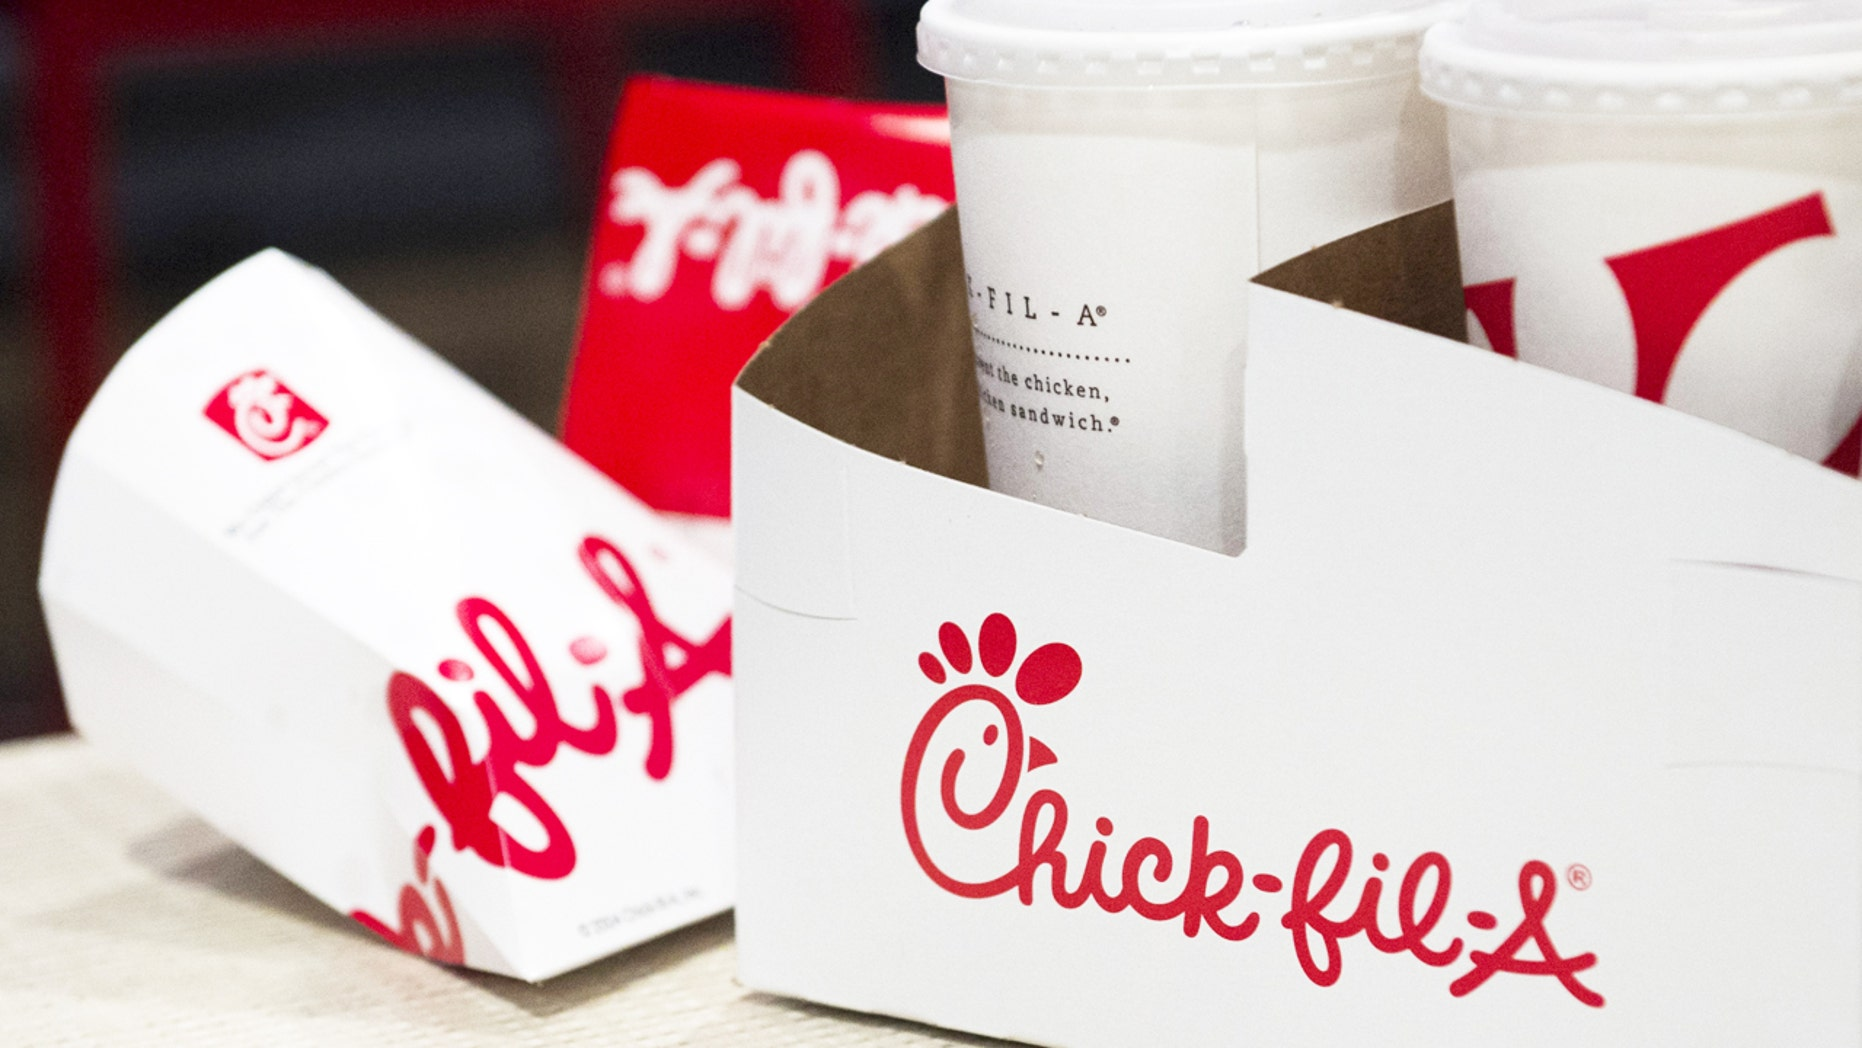 Chick-Fil-A's popular fried chicken sandwiches and friendly service have made it one of America's most beloved fast food chains.